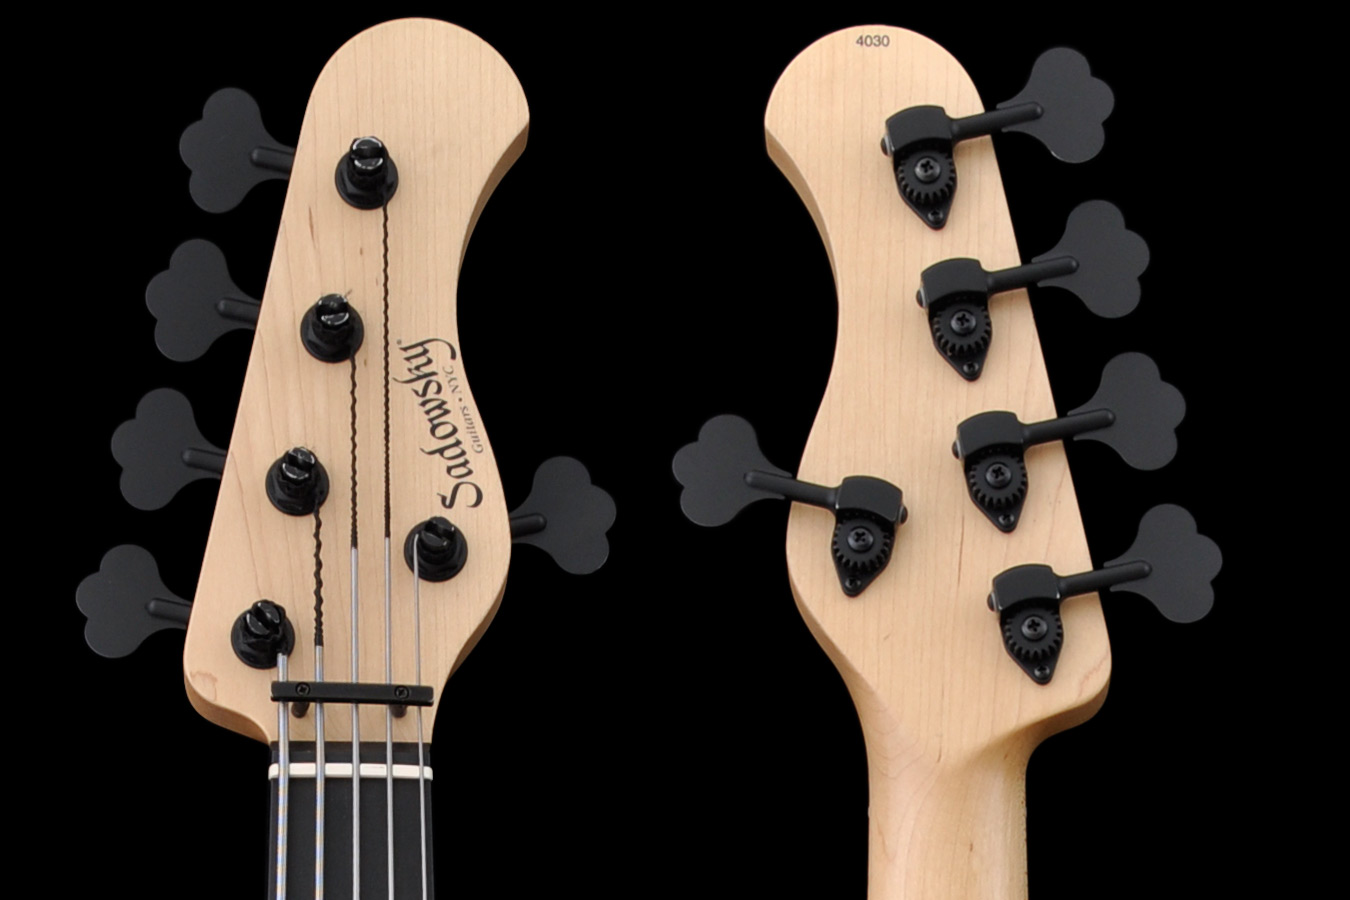 sadowsky nyc5 archive high end bass guitars amps bass strings. Black Bedroom Furniture Sets. Home Design Ideas